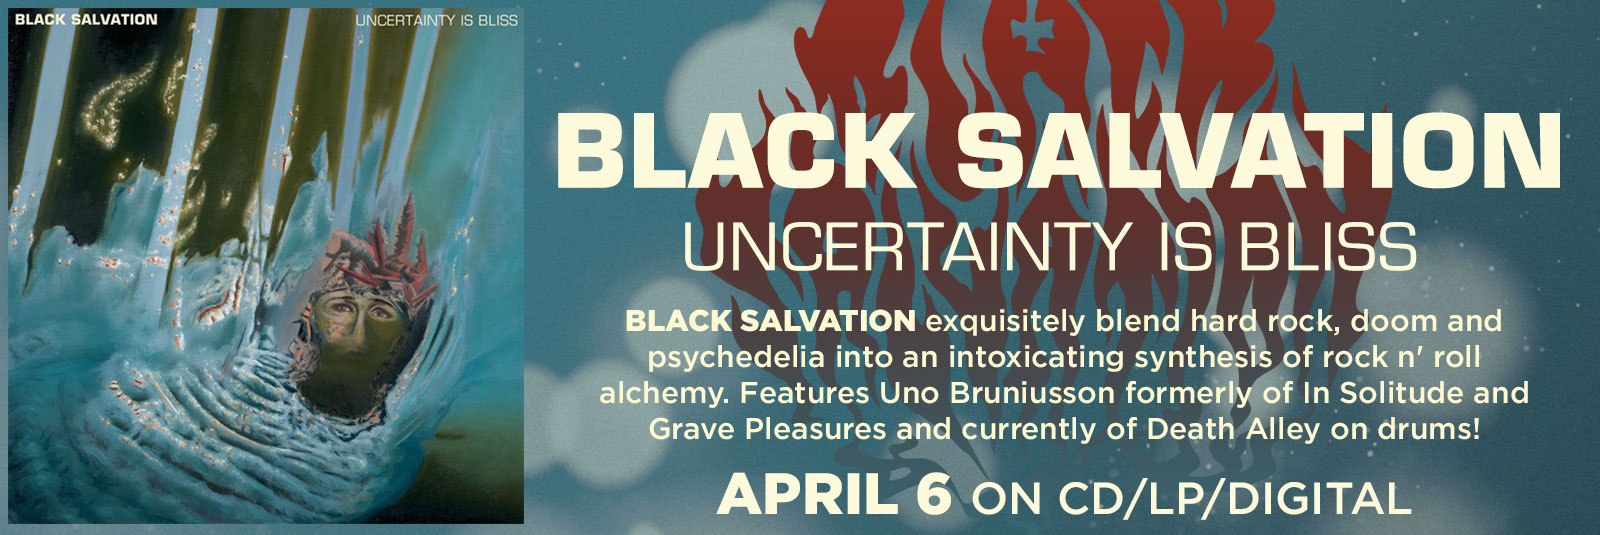 black+salvation+uncertainy+is+bliss